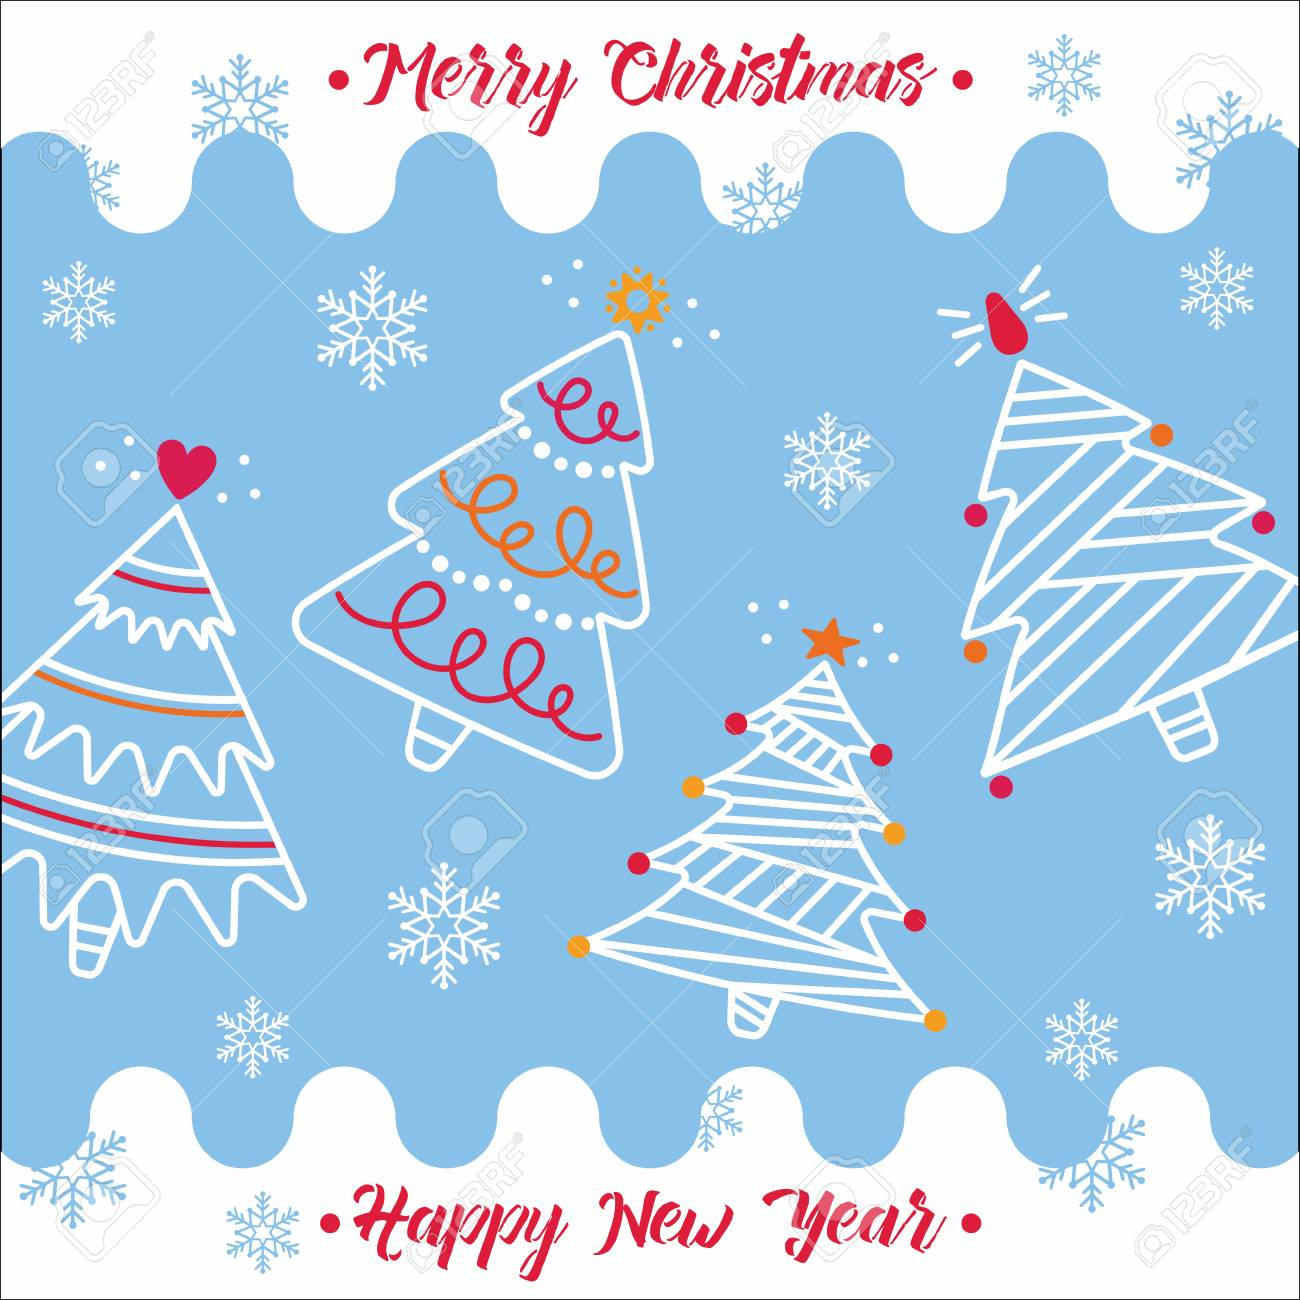 Merry Christmas And New Year Greeting Card On A Blue Background